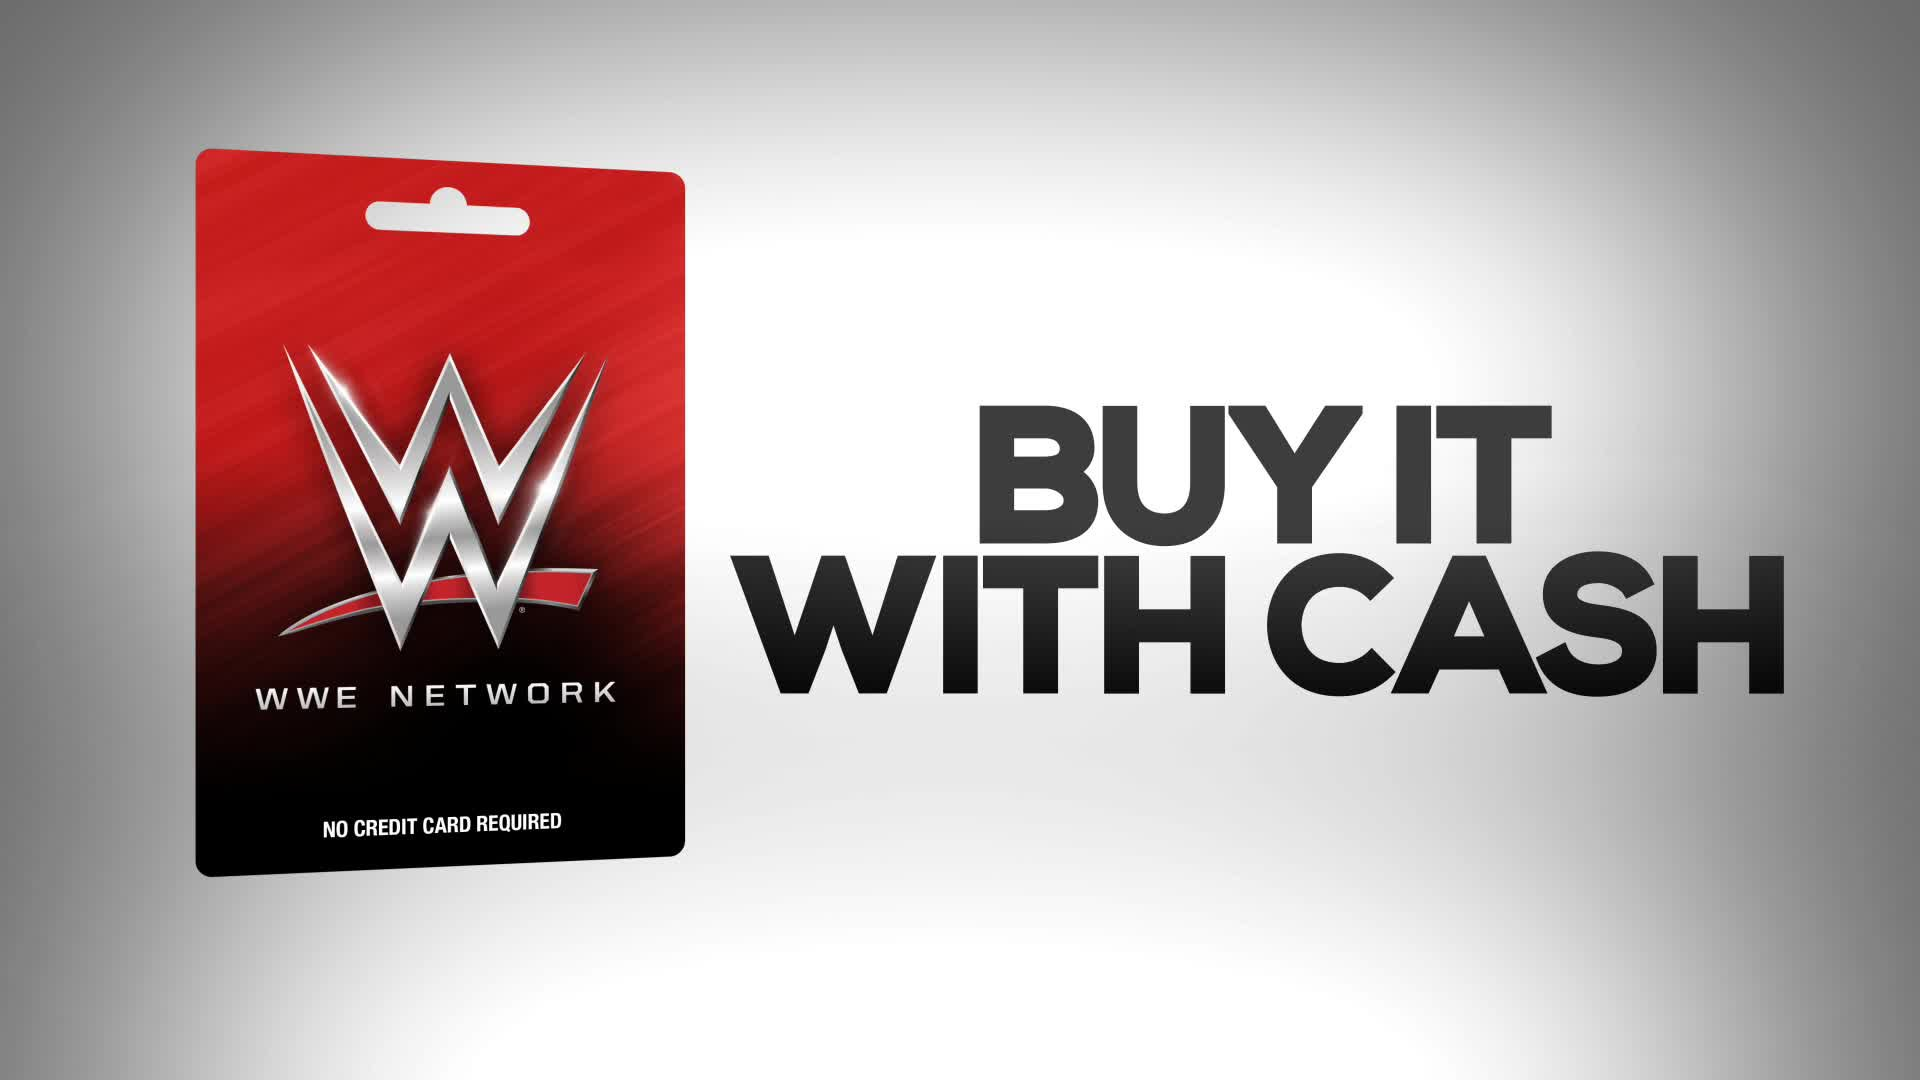 get the wwe network prepaid card available at walmart best buy gamestop 7 eleven and dollar general wwe - Buy Prepaid Card